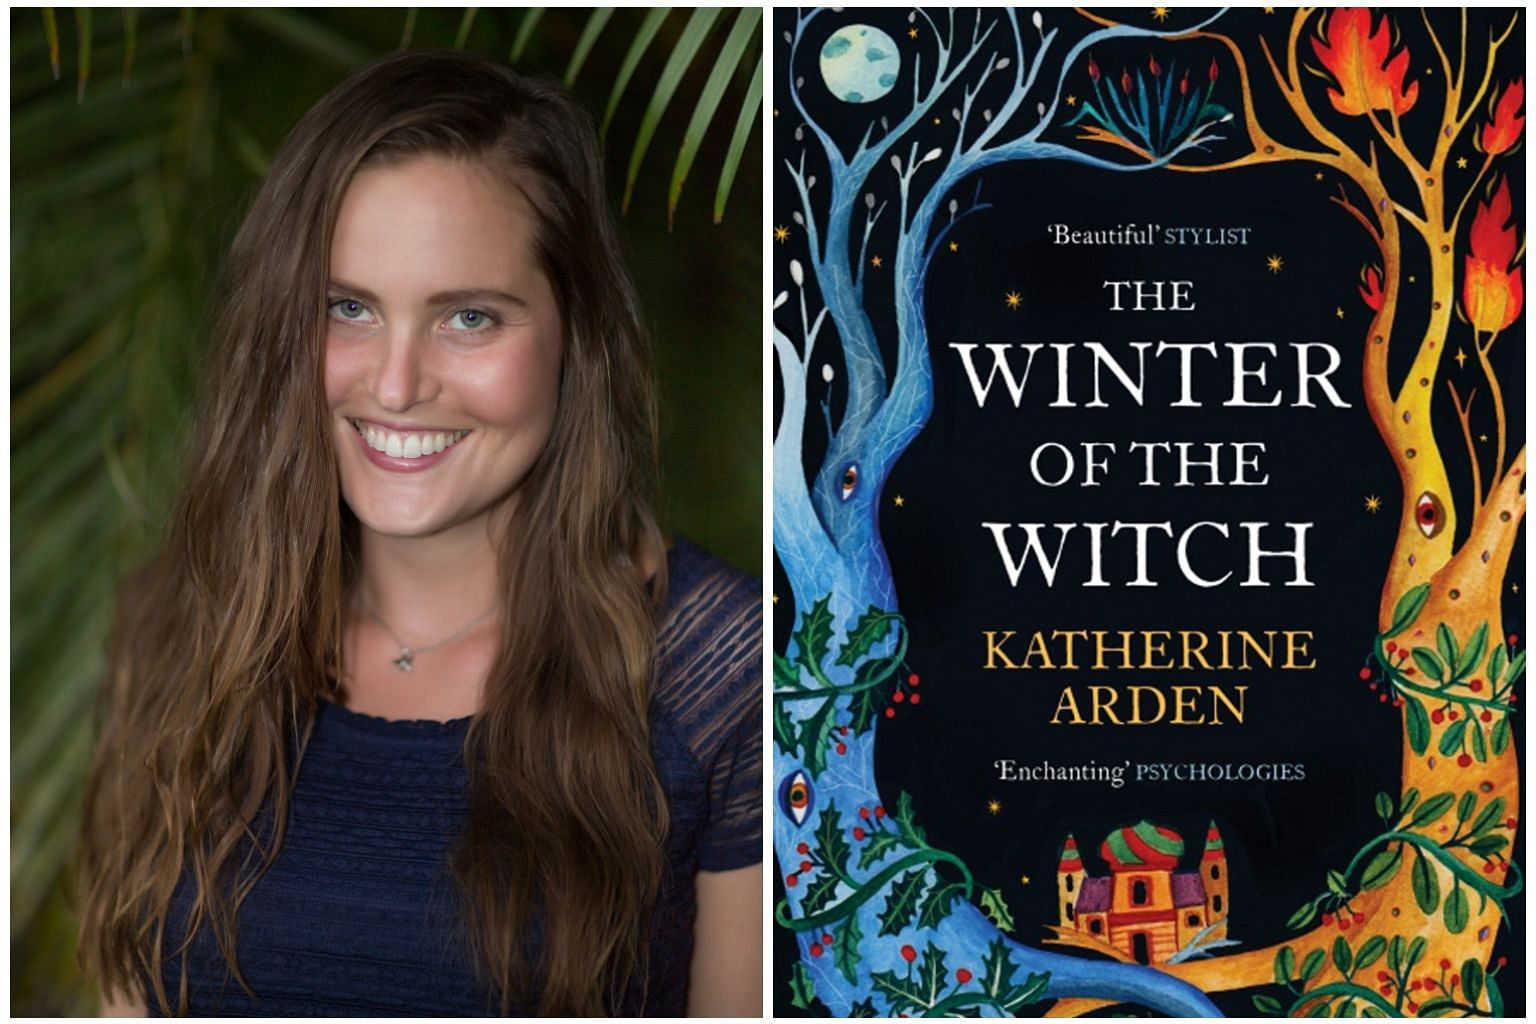 The Winter Of The Witch (right) by Katherine Arden (left) is the final book in the Winternight trilogy.